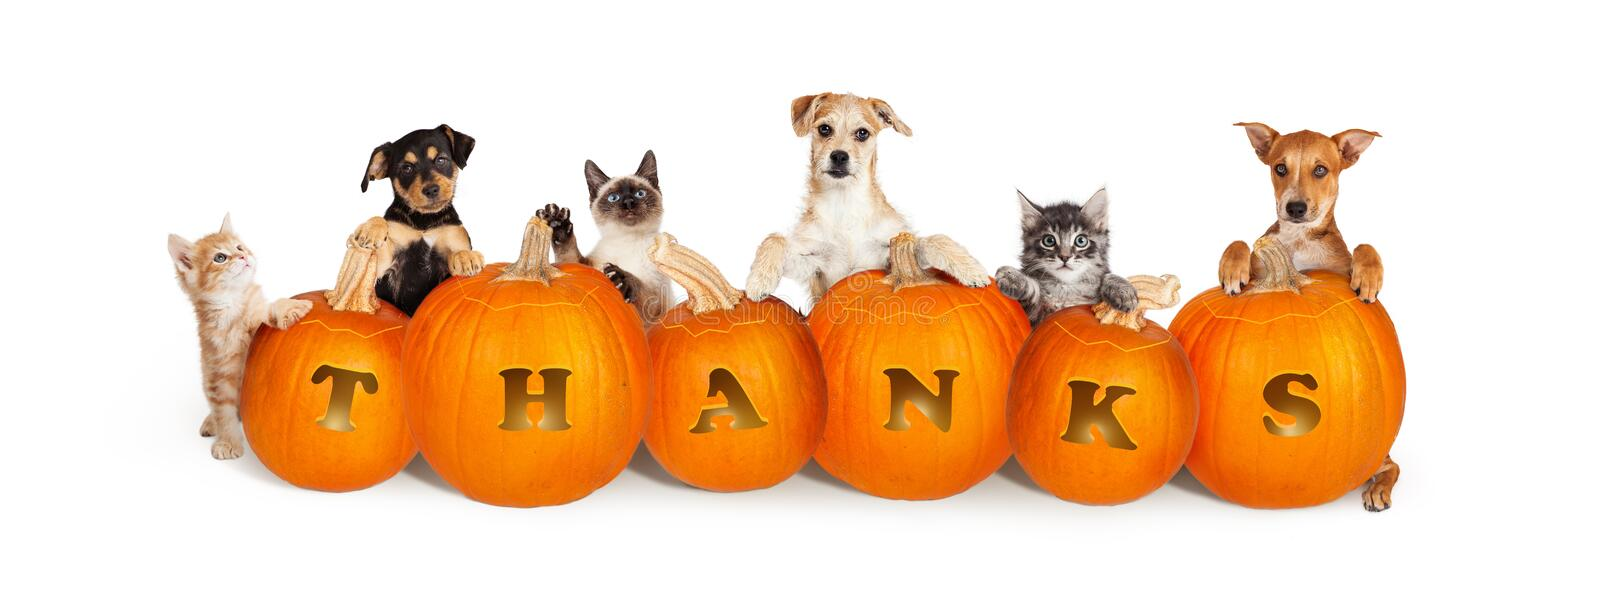 Cats and Dogs Over Thanksgiving Pumpkins stock images